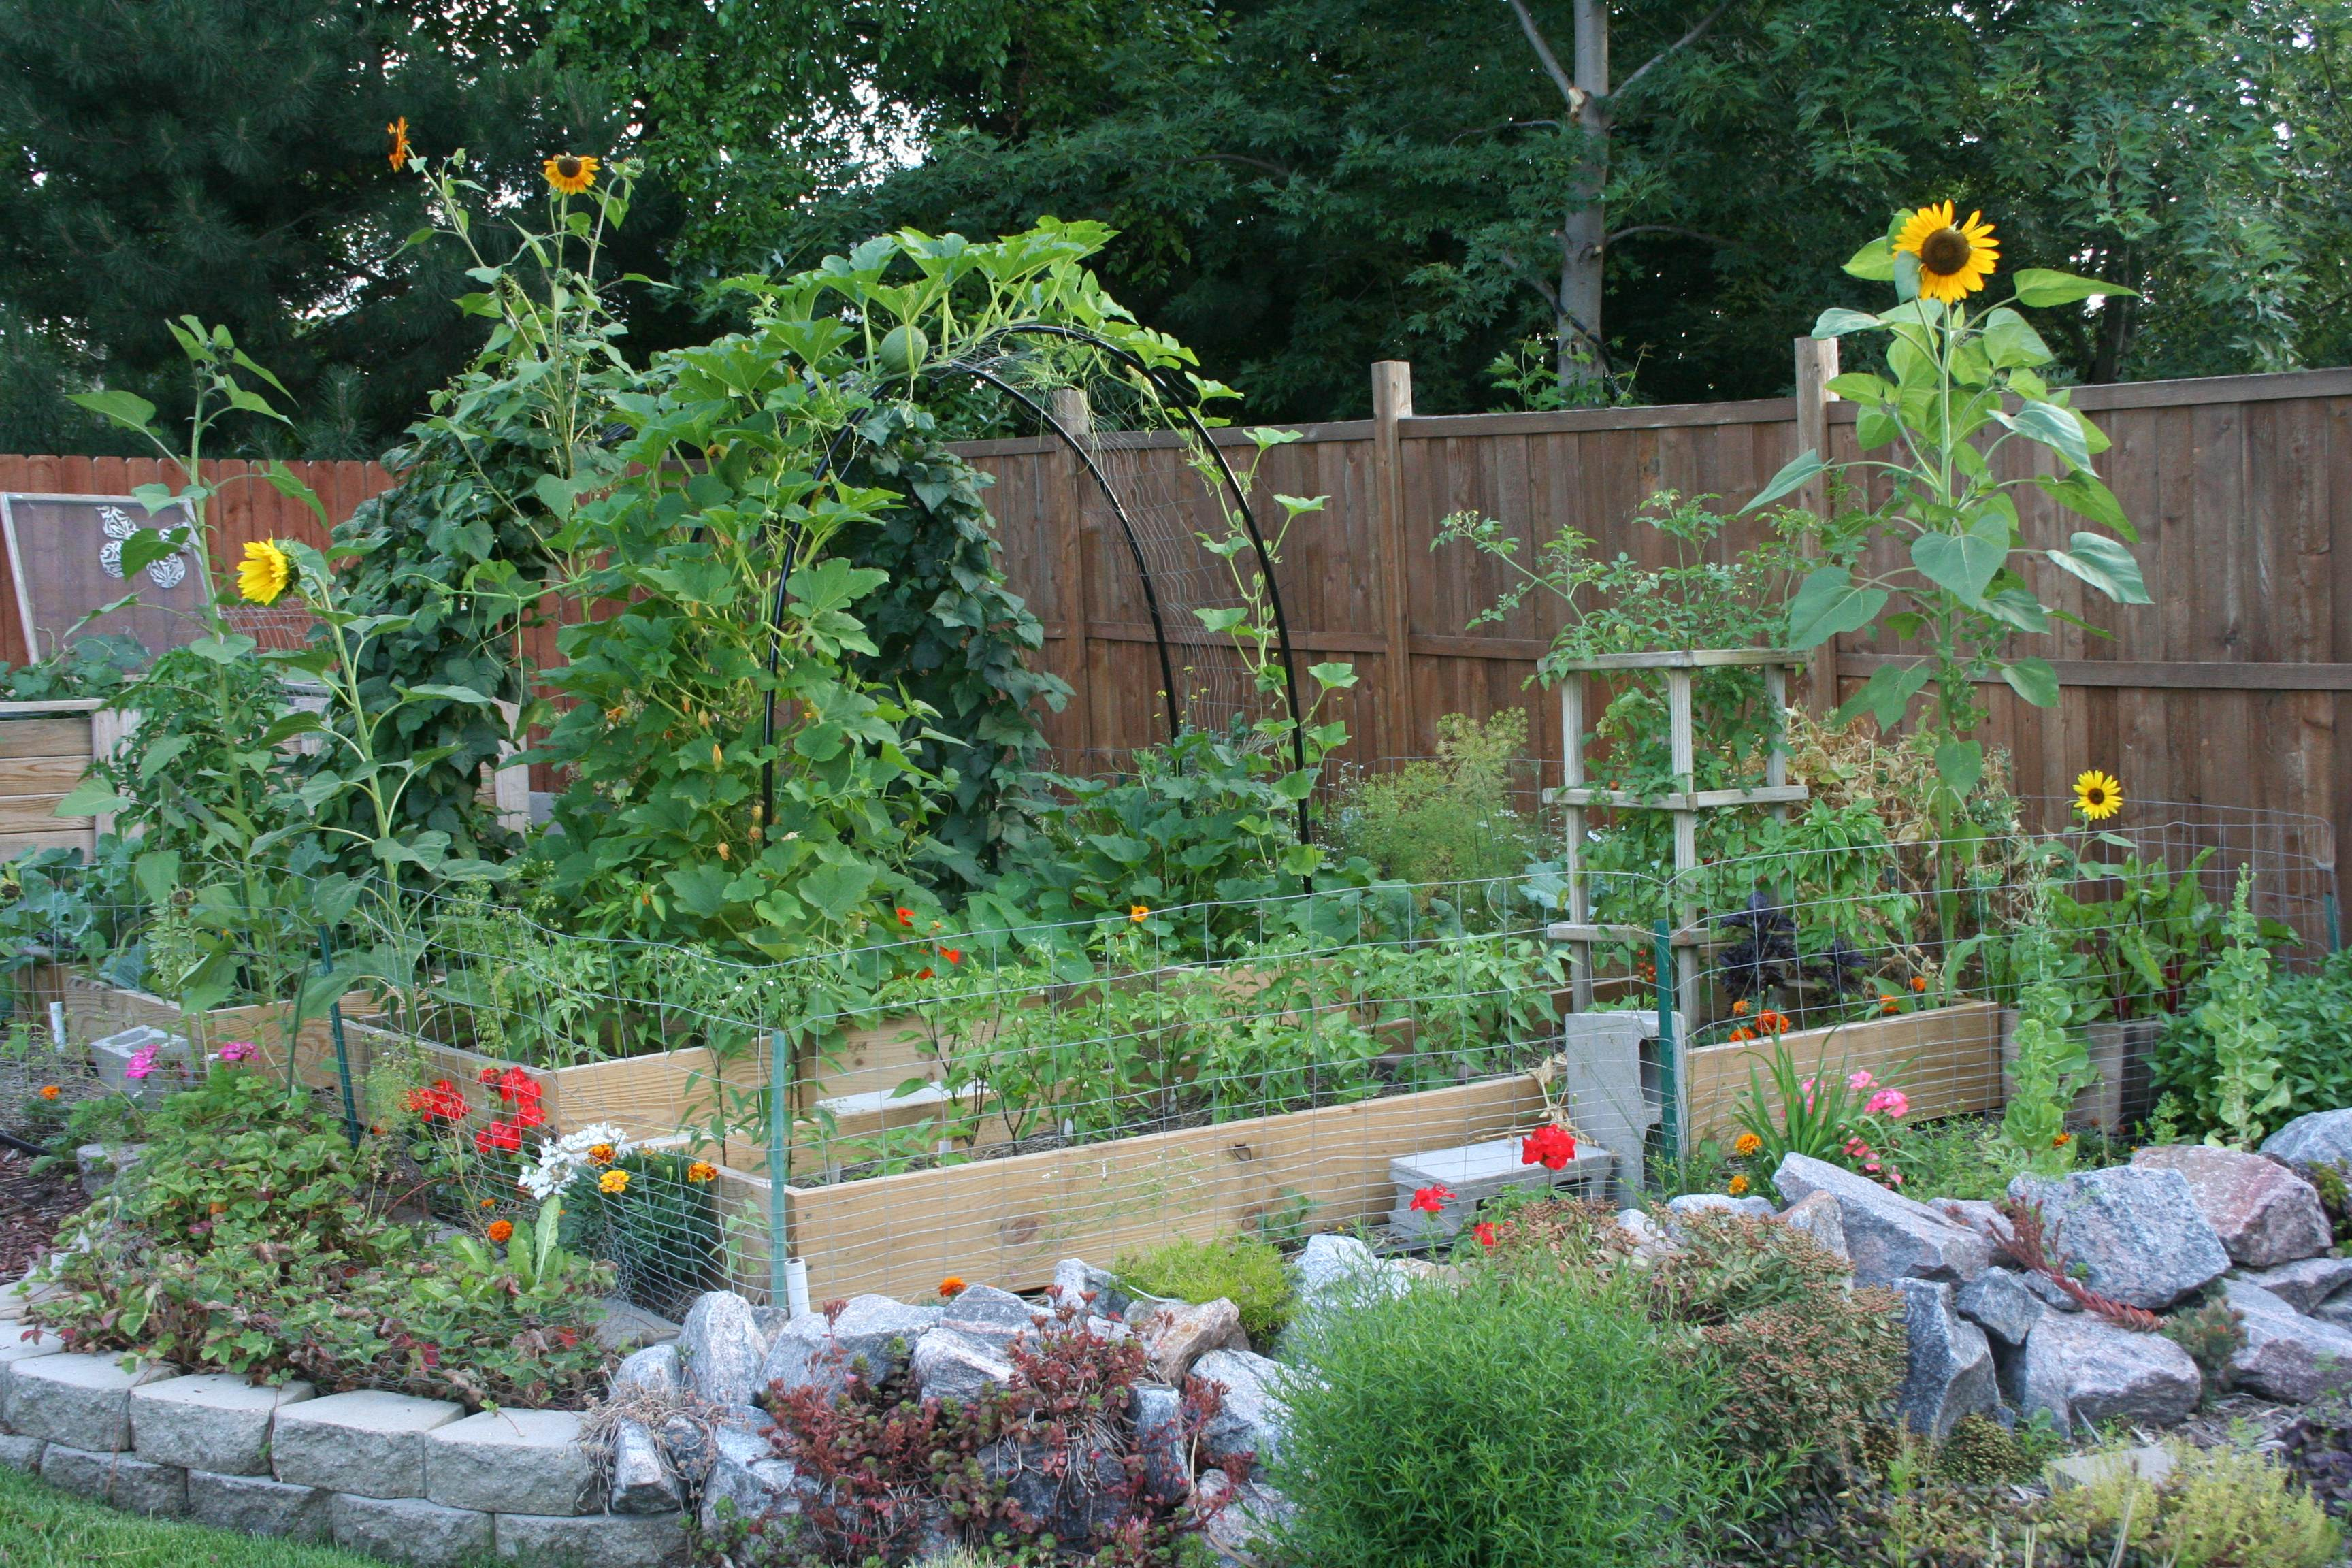 amy archway - Country Vegetable Garden Ideas